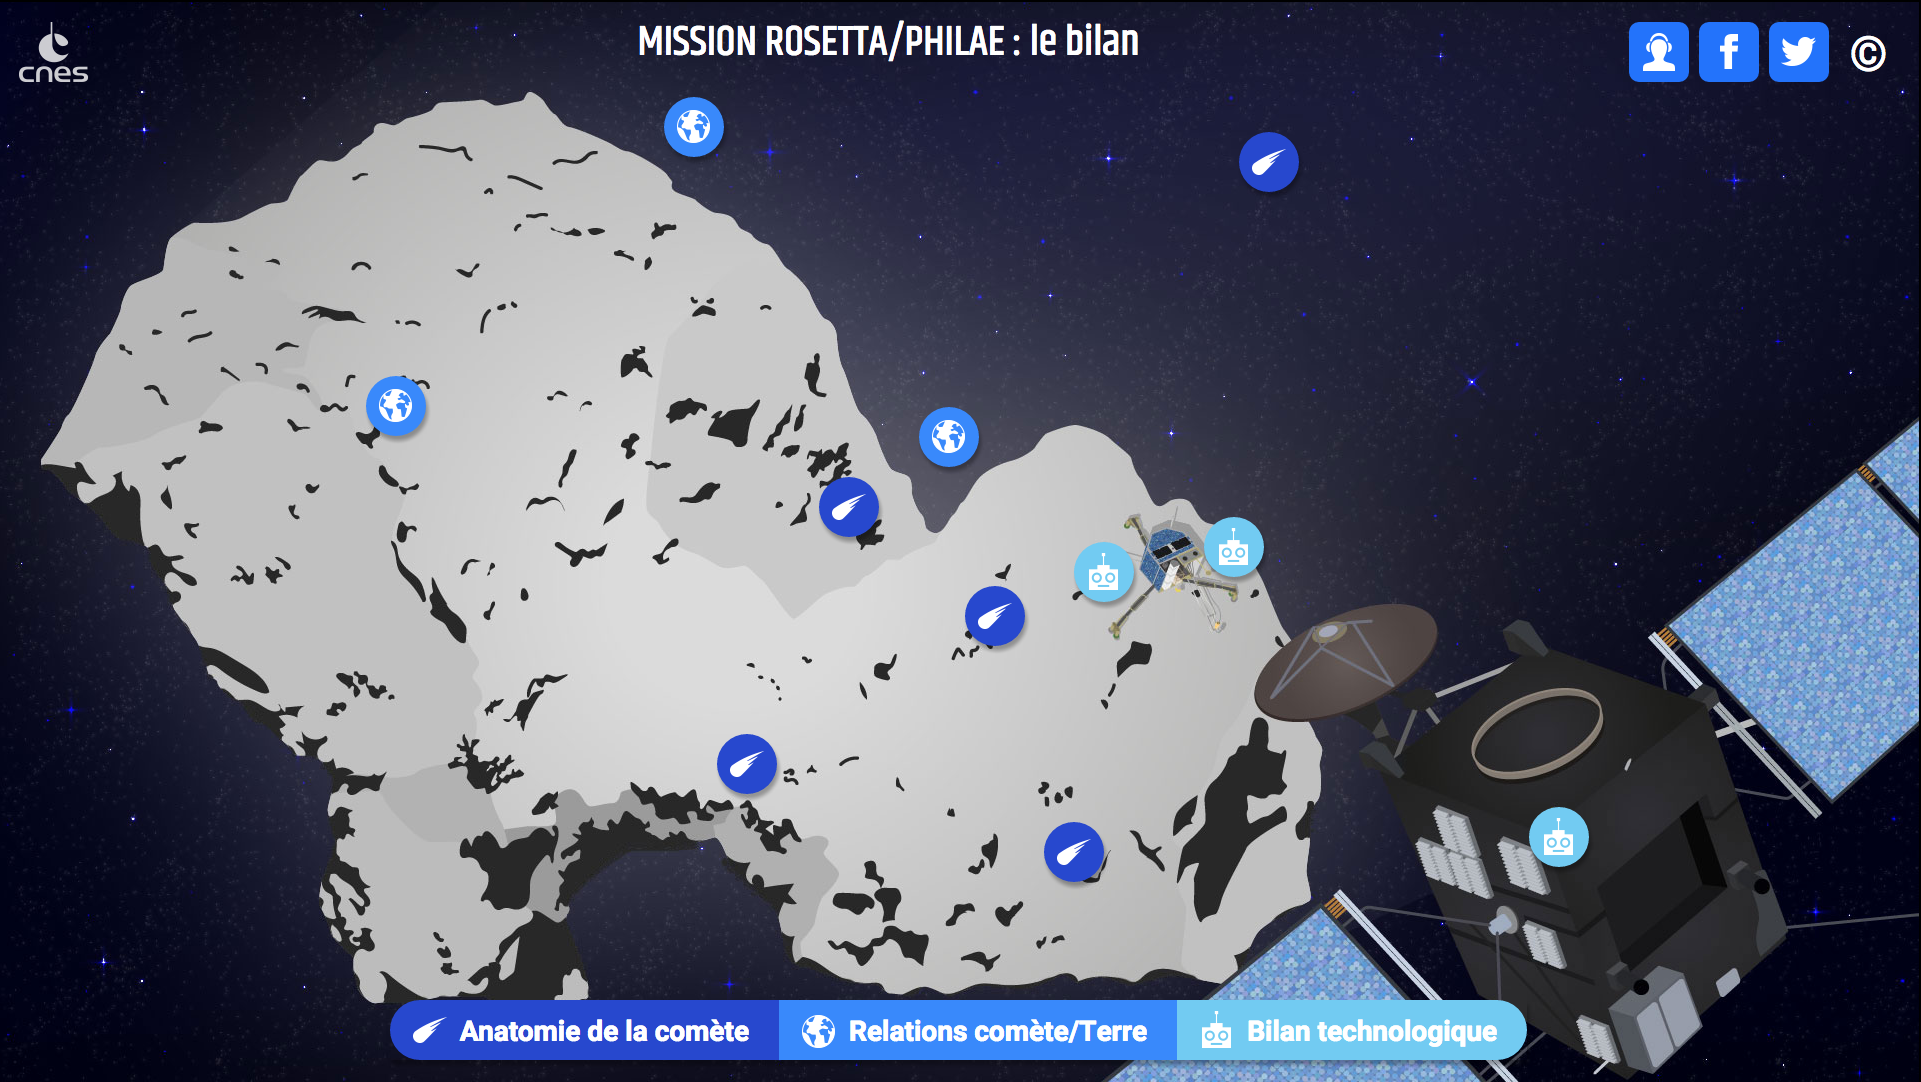 je_infographie_rosetta.png